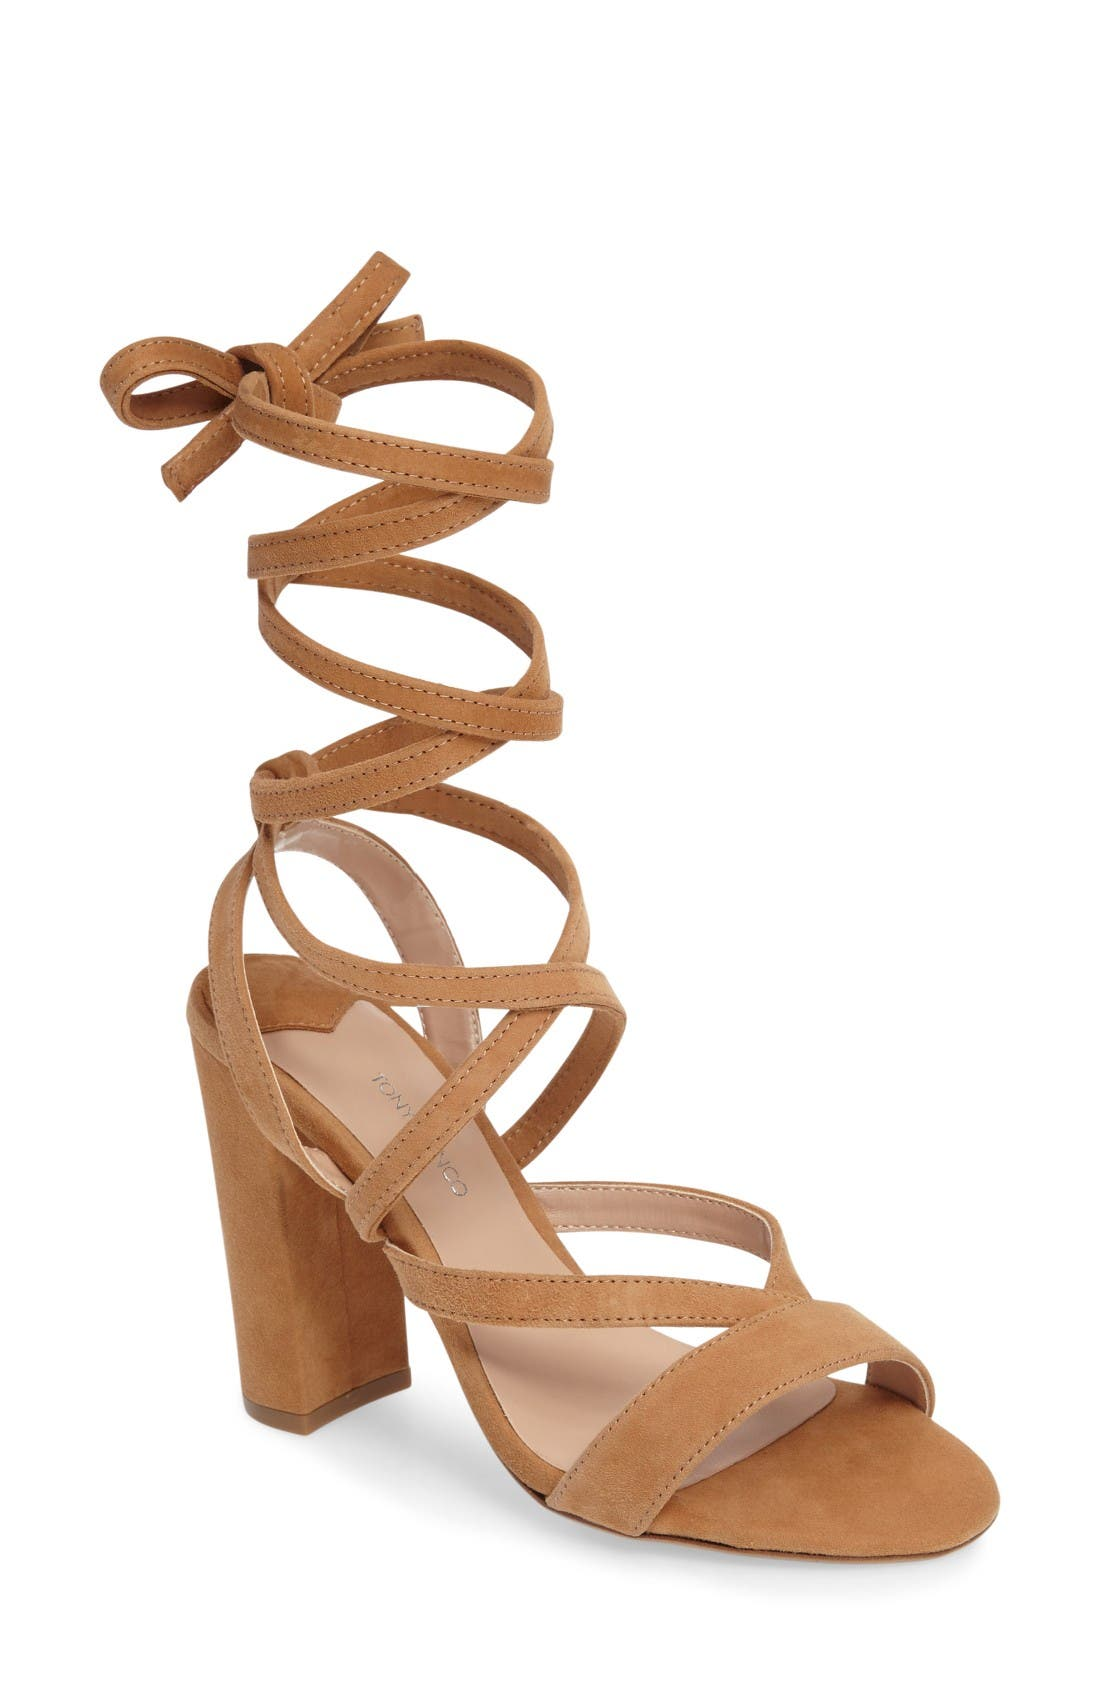 Main Image - Tony Bianco Kappa Ankle Wrap Sandal (Women)